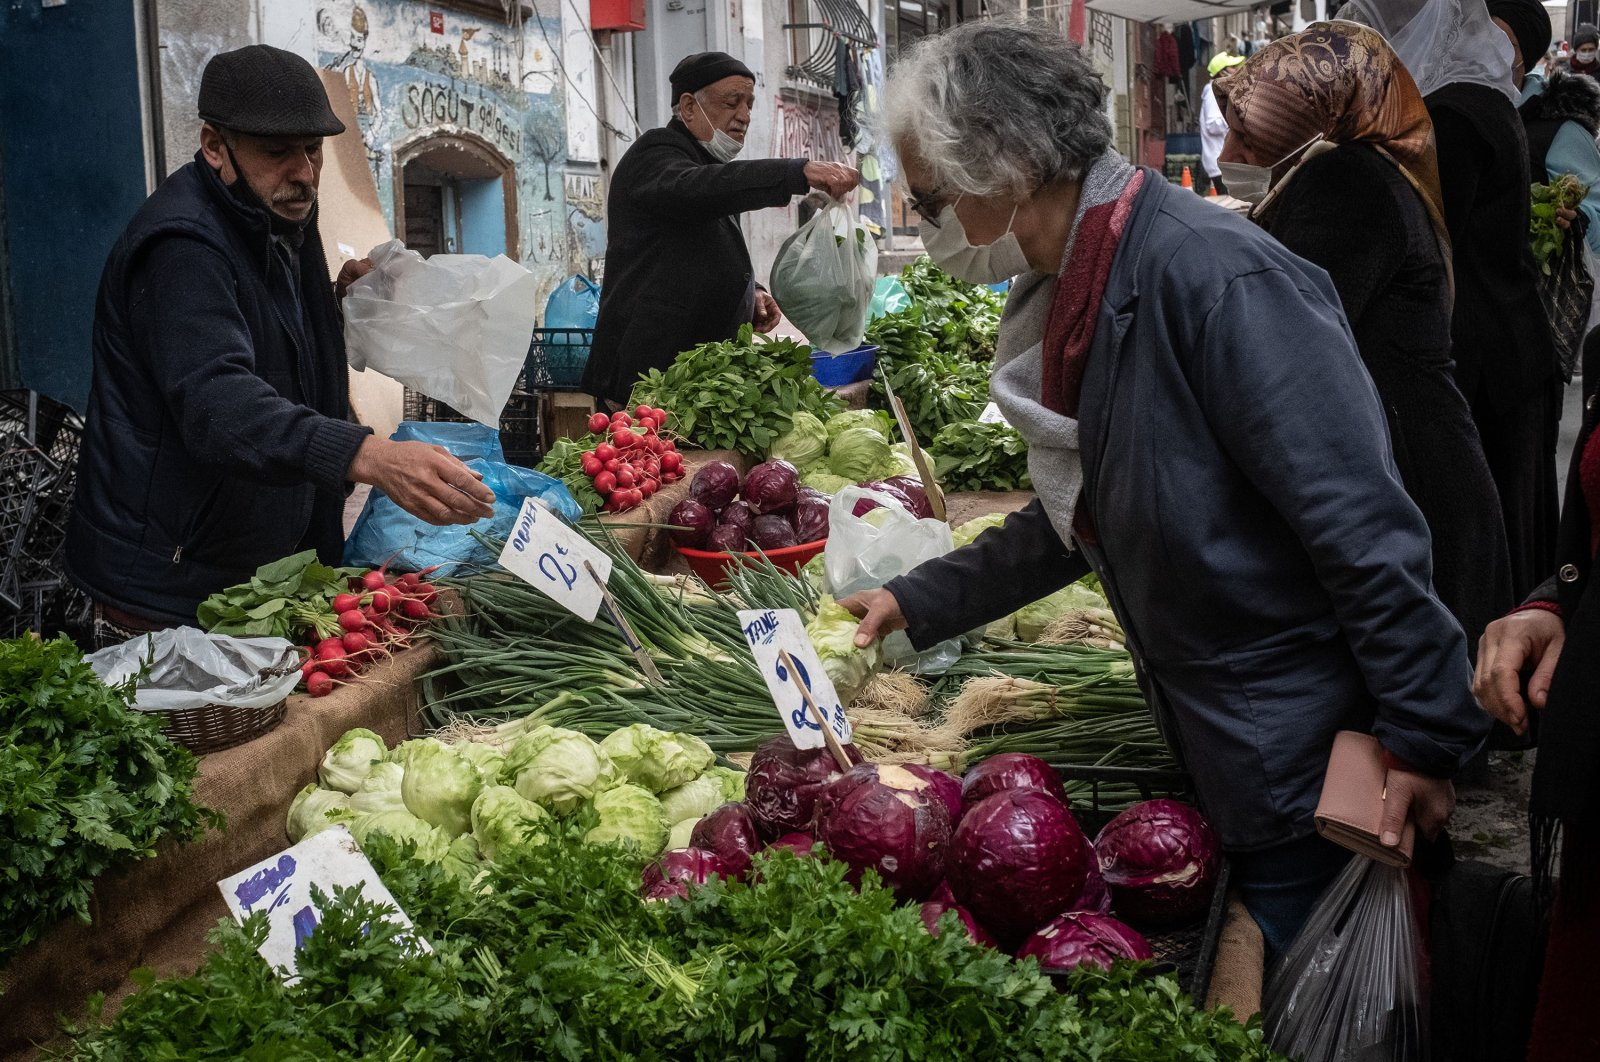 People shop at a local street market in Istanbul, Turkey, March 22, 2021. (Getty Images)